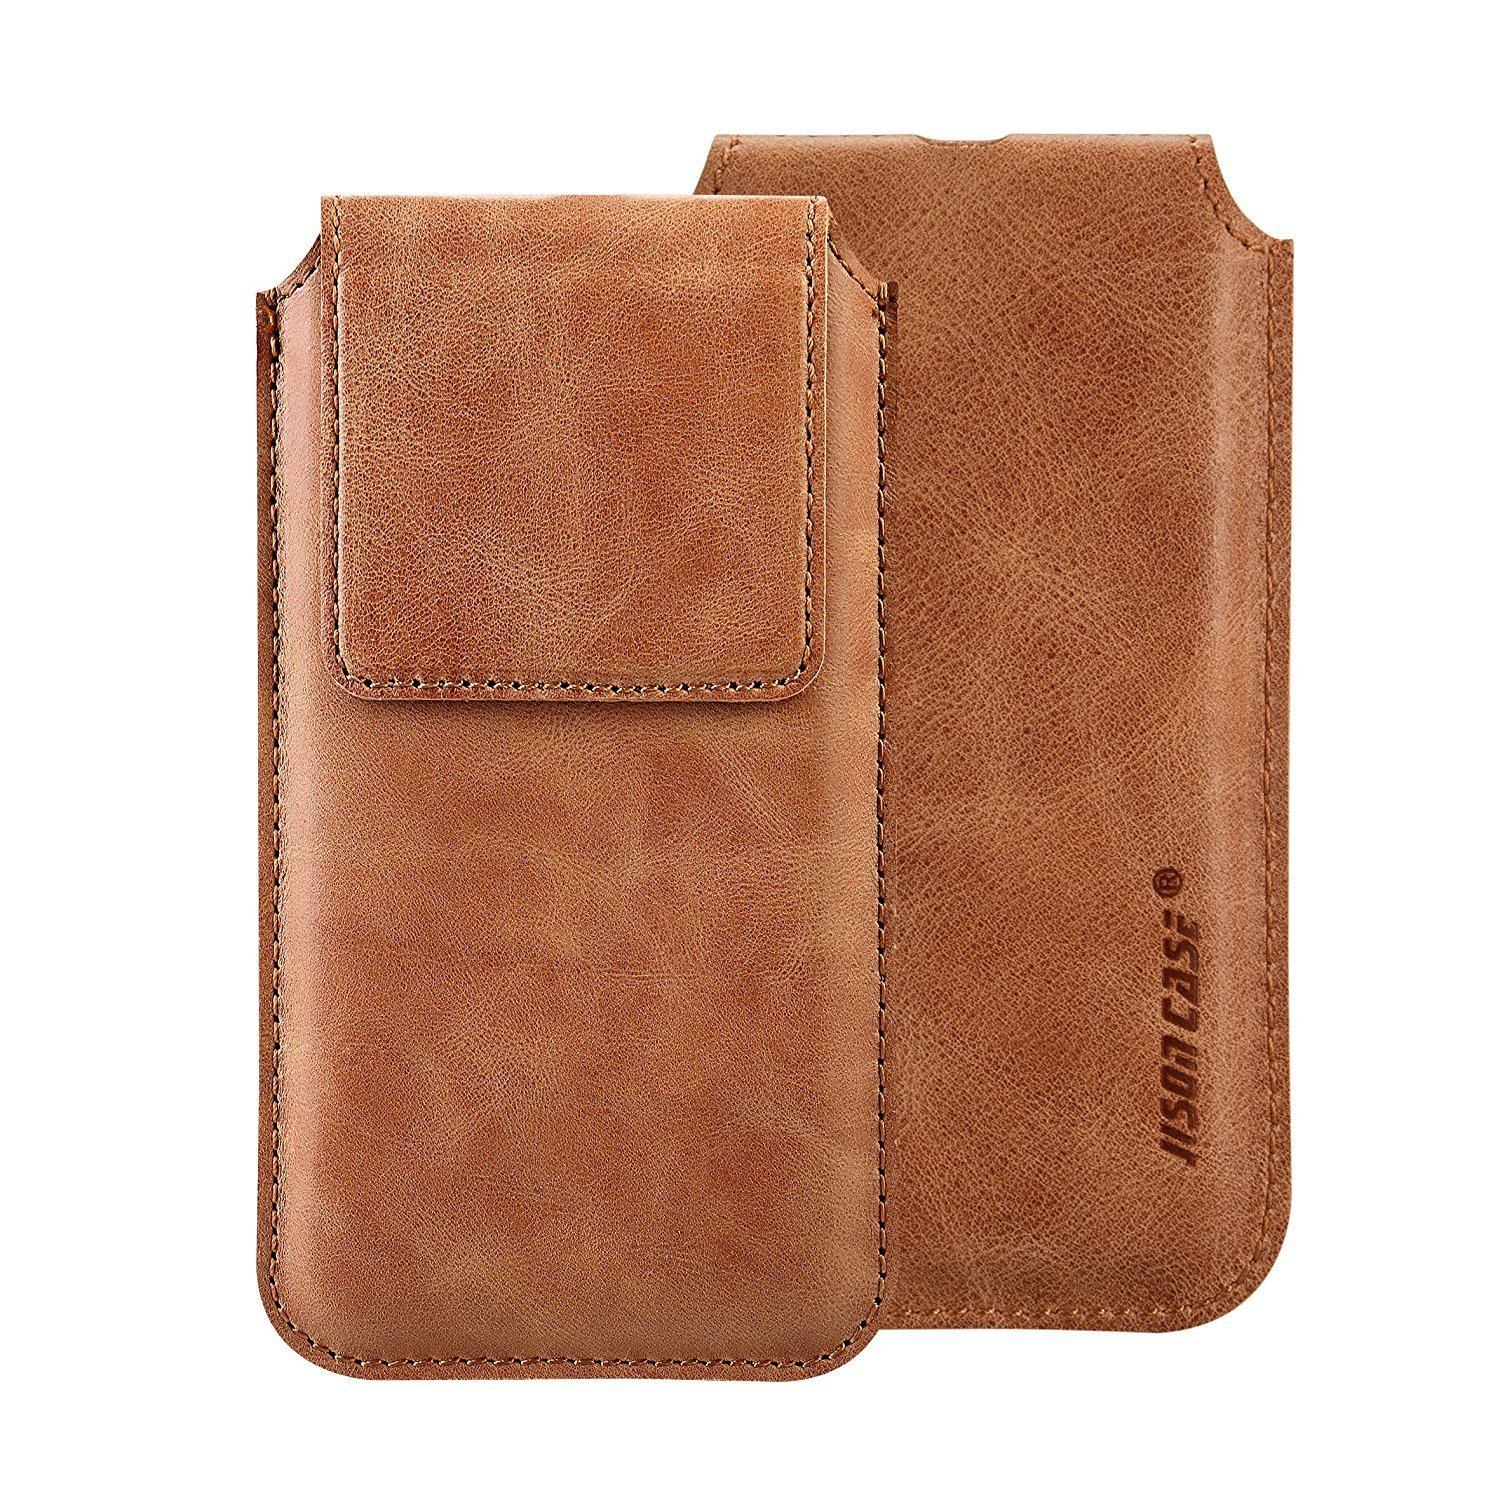 iPhone X Leather Case Sleeve TOOVREN Genuine Leather Protective Ultra Rugged Holster Phone Pouch Carrying Bag for Apple iPhone X/10 (2017) Brown by TOOVREN (Image #5)